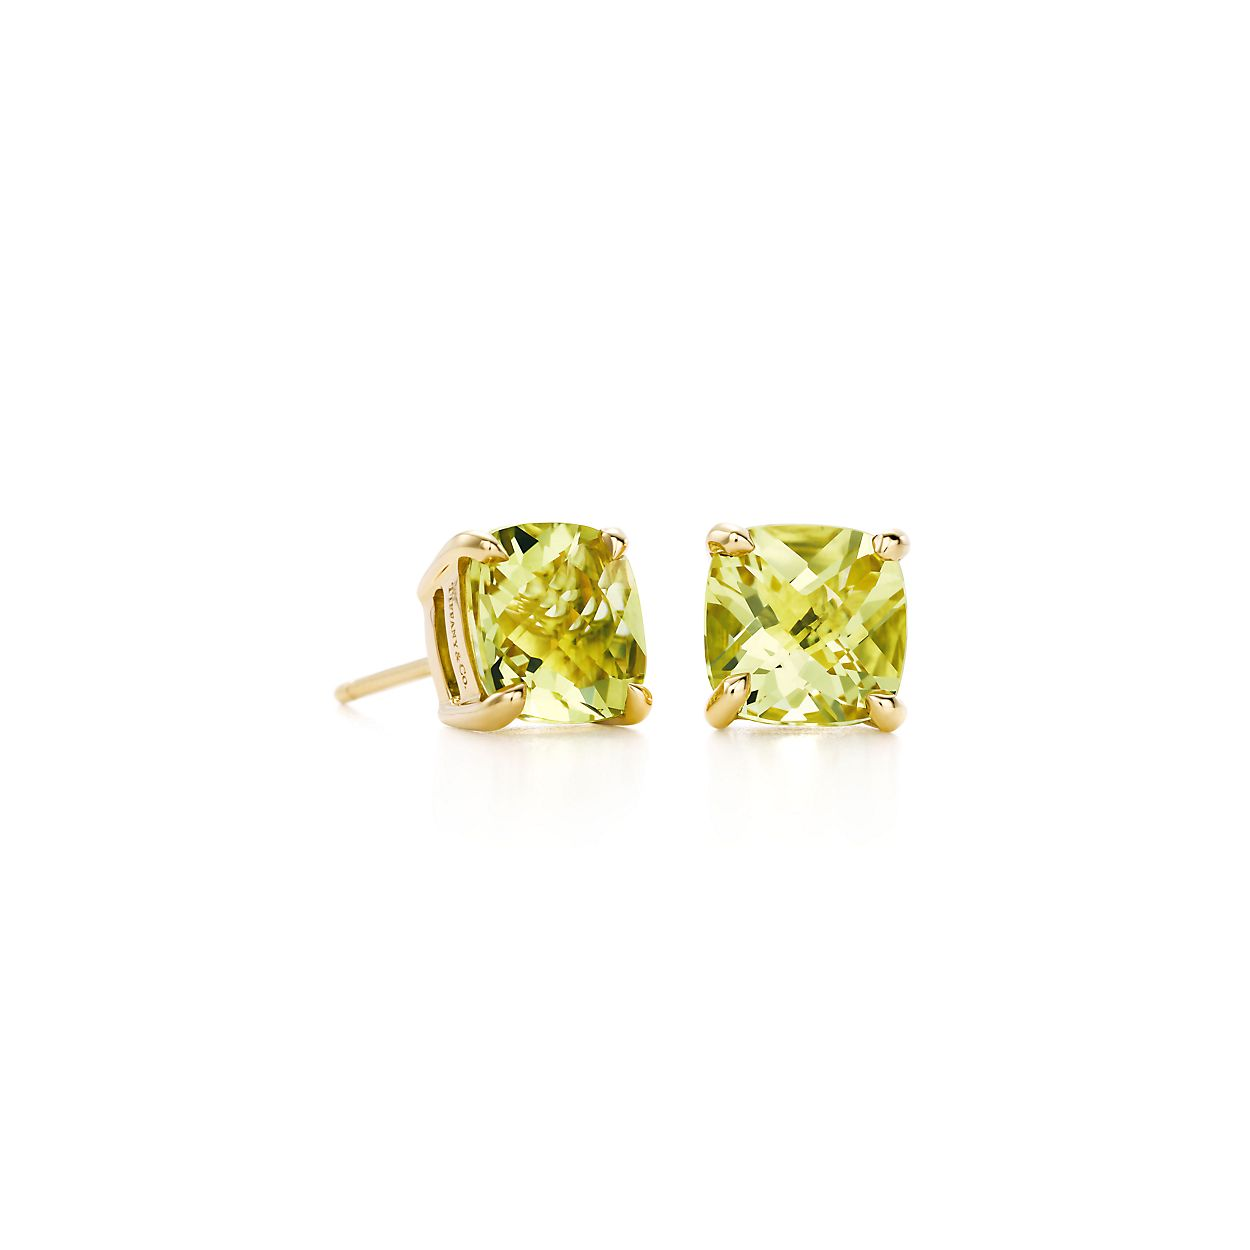 Tiffany Sparklers Yellow Citrine Earrings